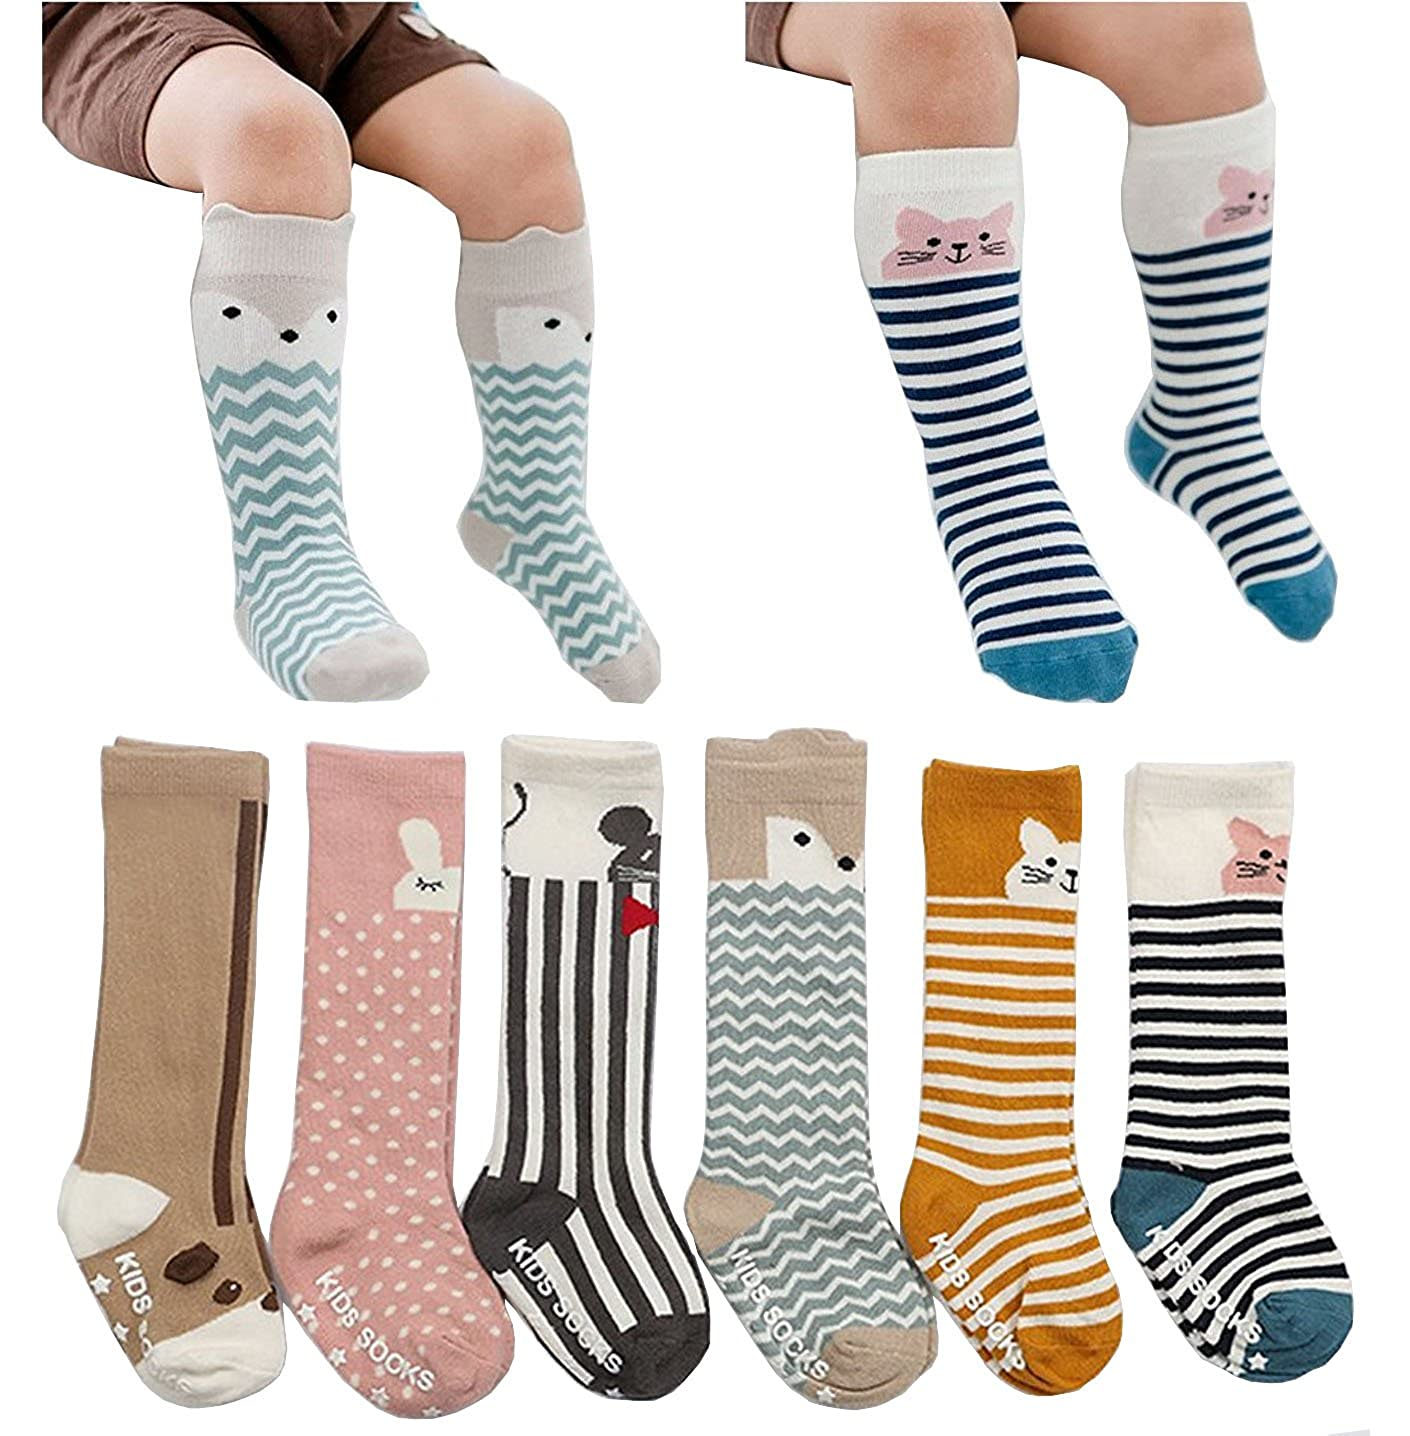 6 Pairs Toddler Socks, Kids Non Skid Knee High Cotton Socks for Baby Boys Girls